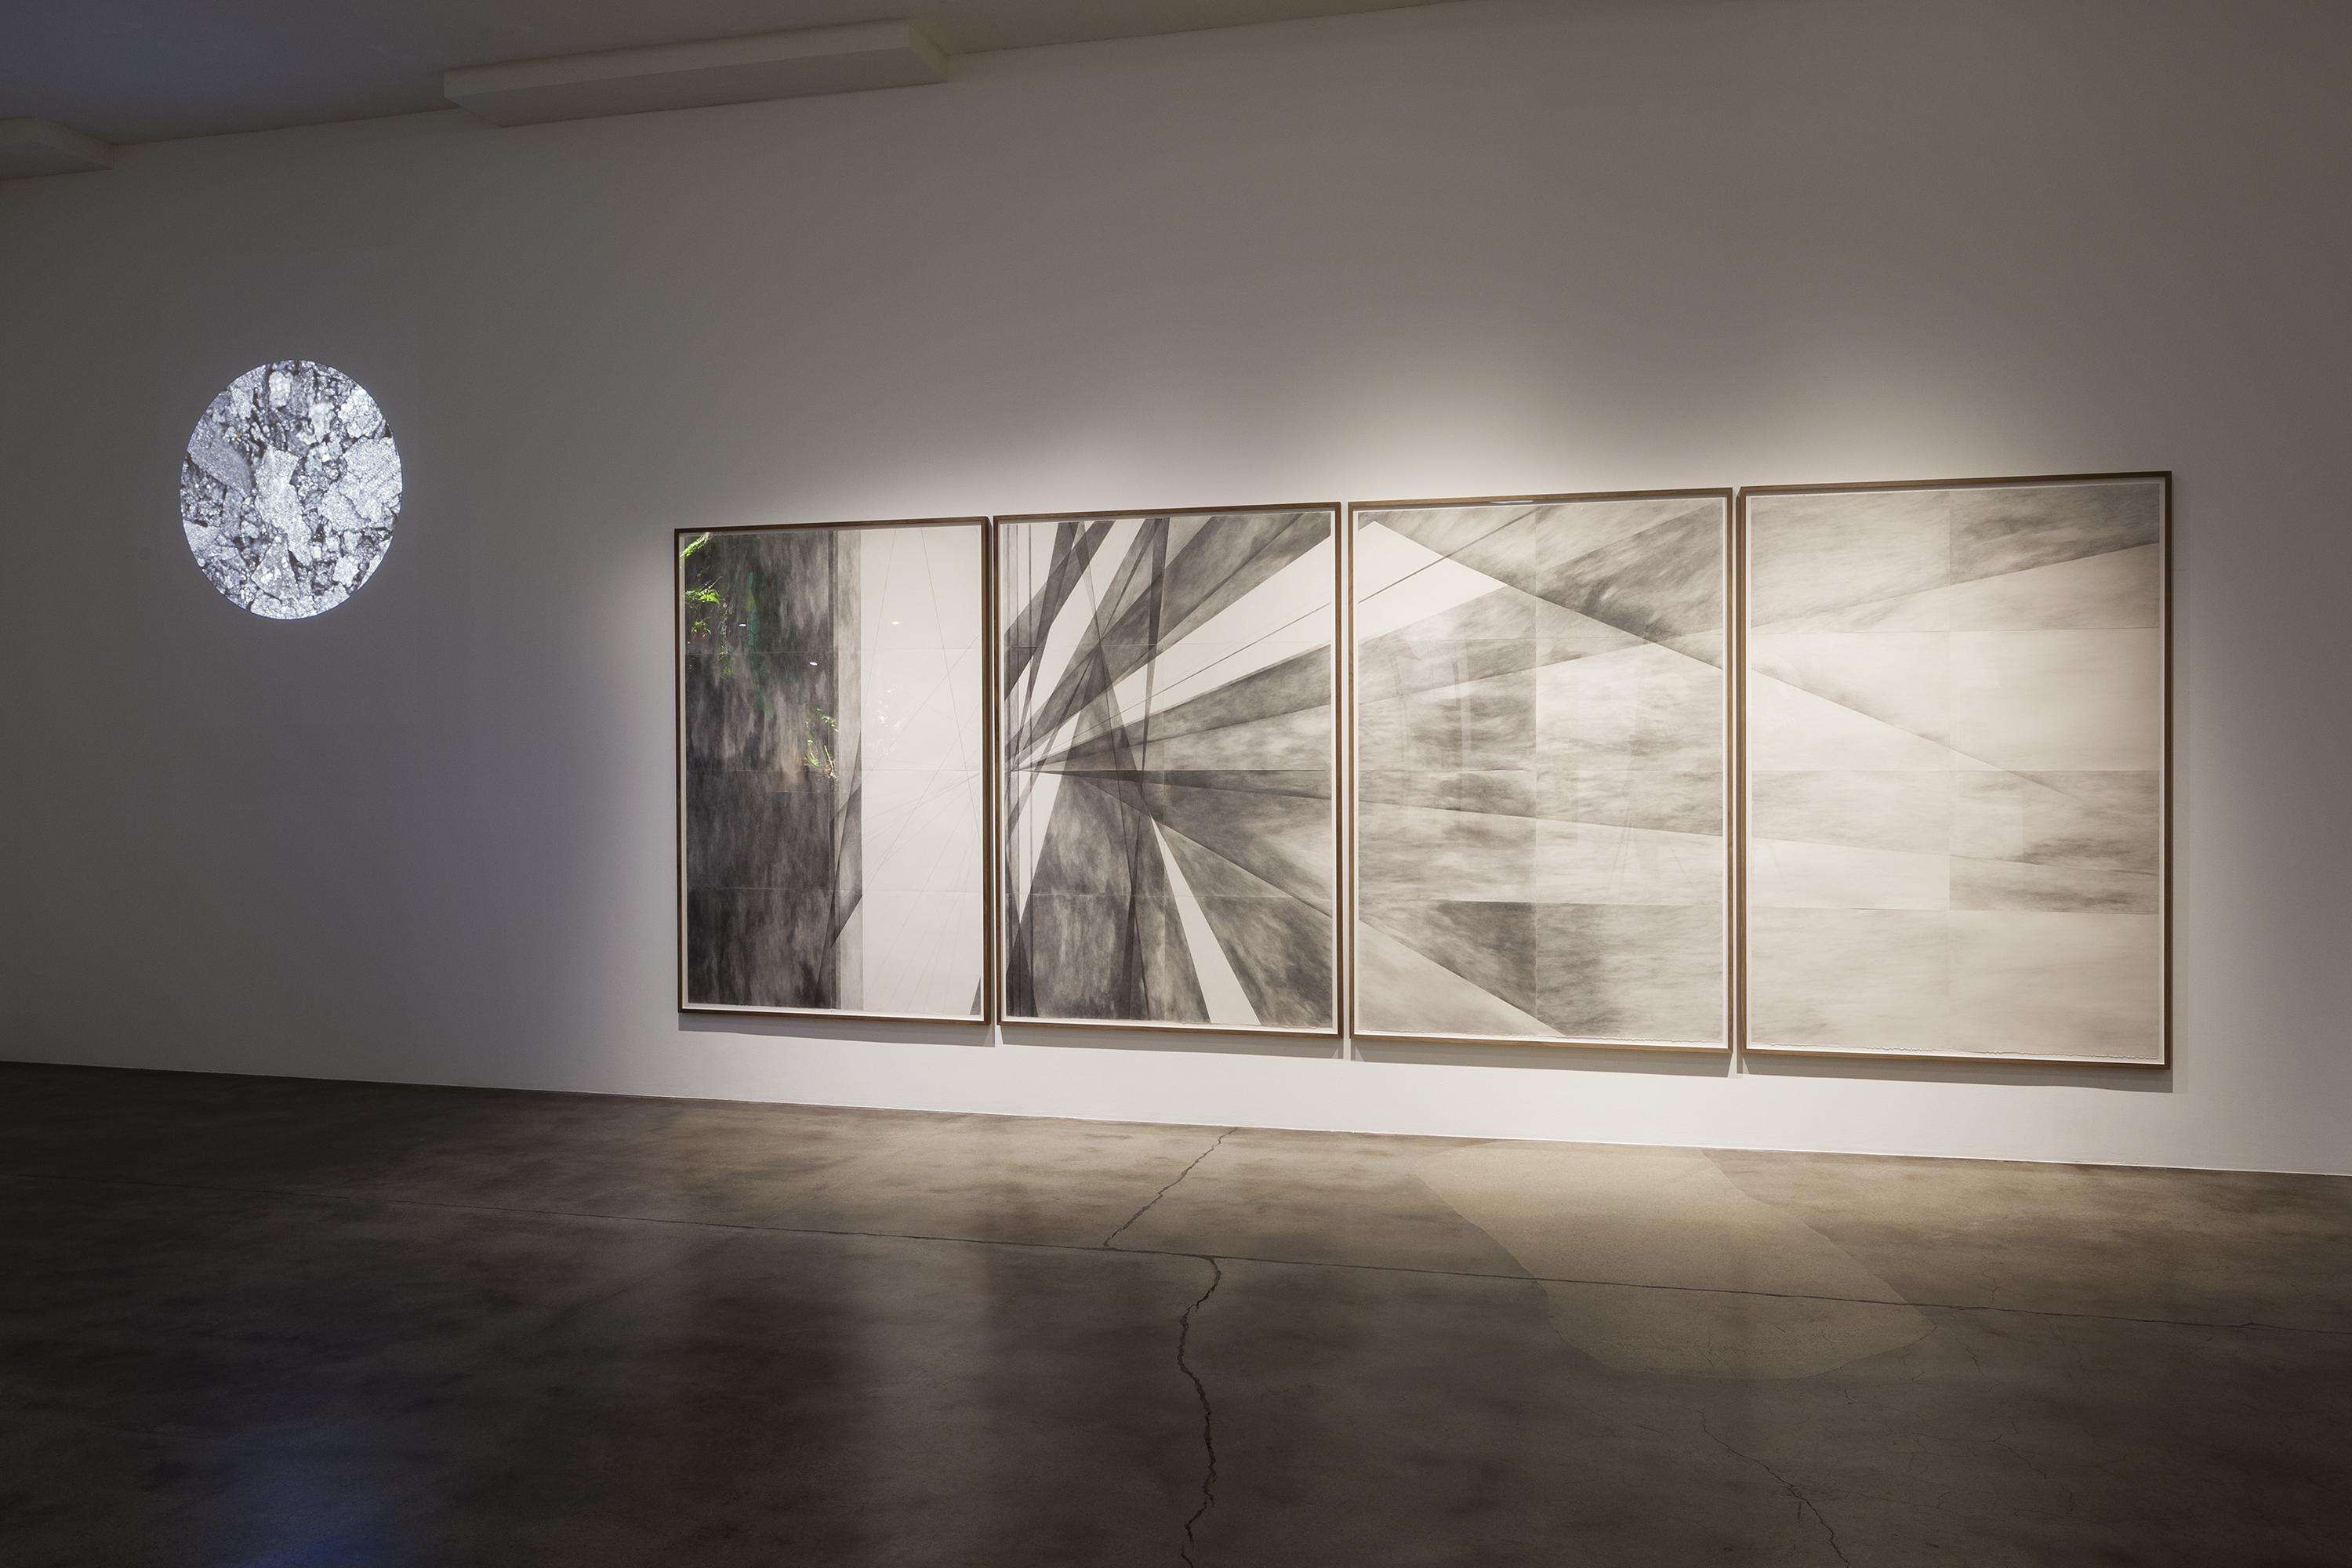 Mesmer Conduit, 2016, video, 31 min loopCloud Chamber, 2014-2016, pencil and paper, each panel 232 x 157,5 cm